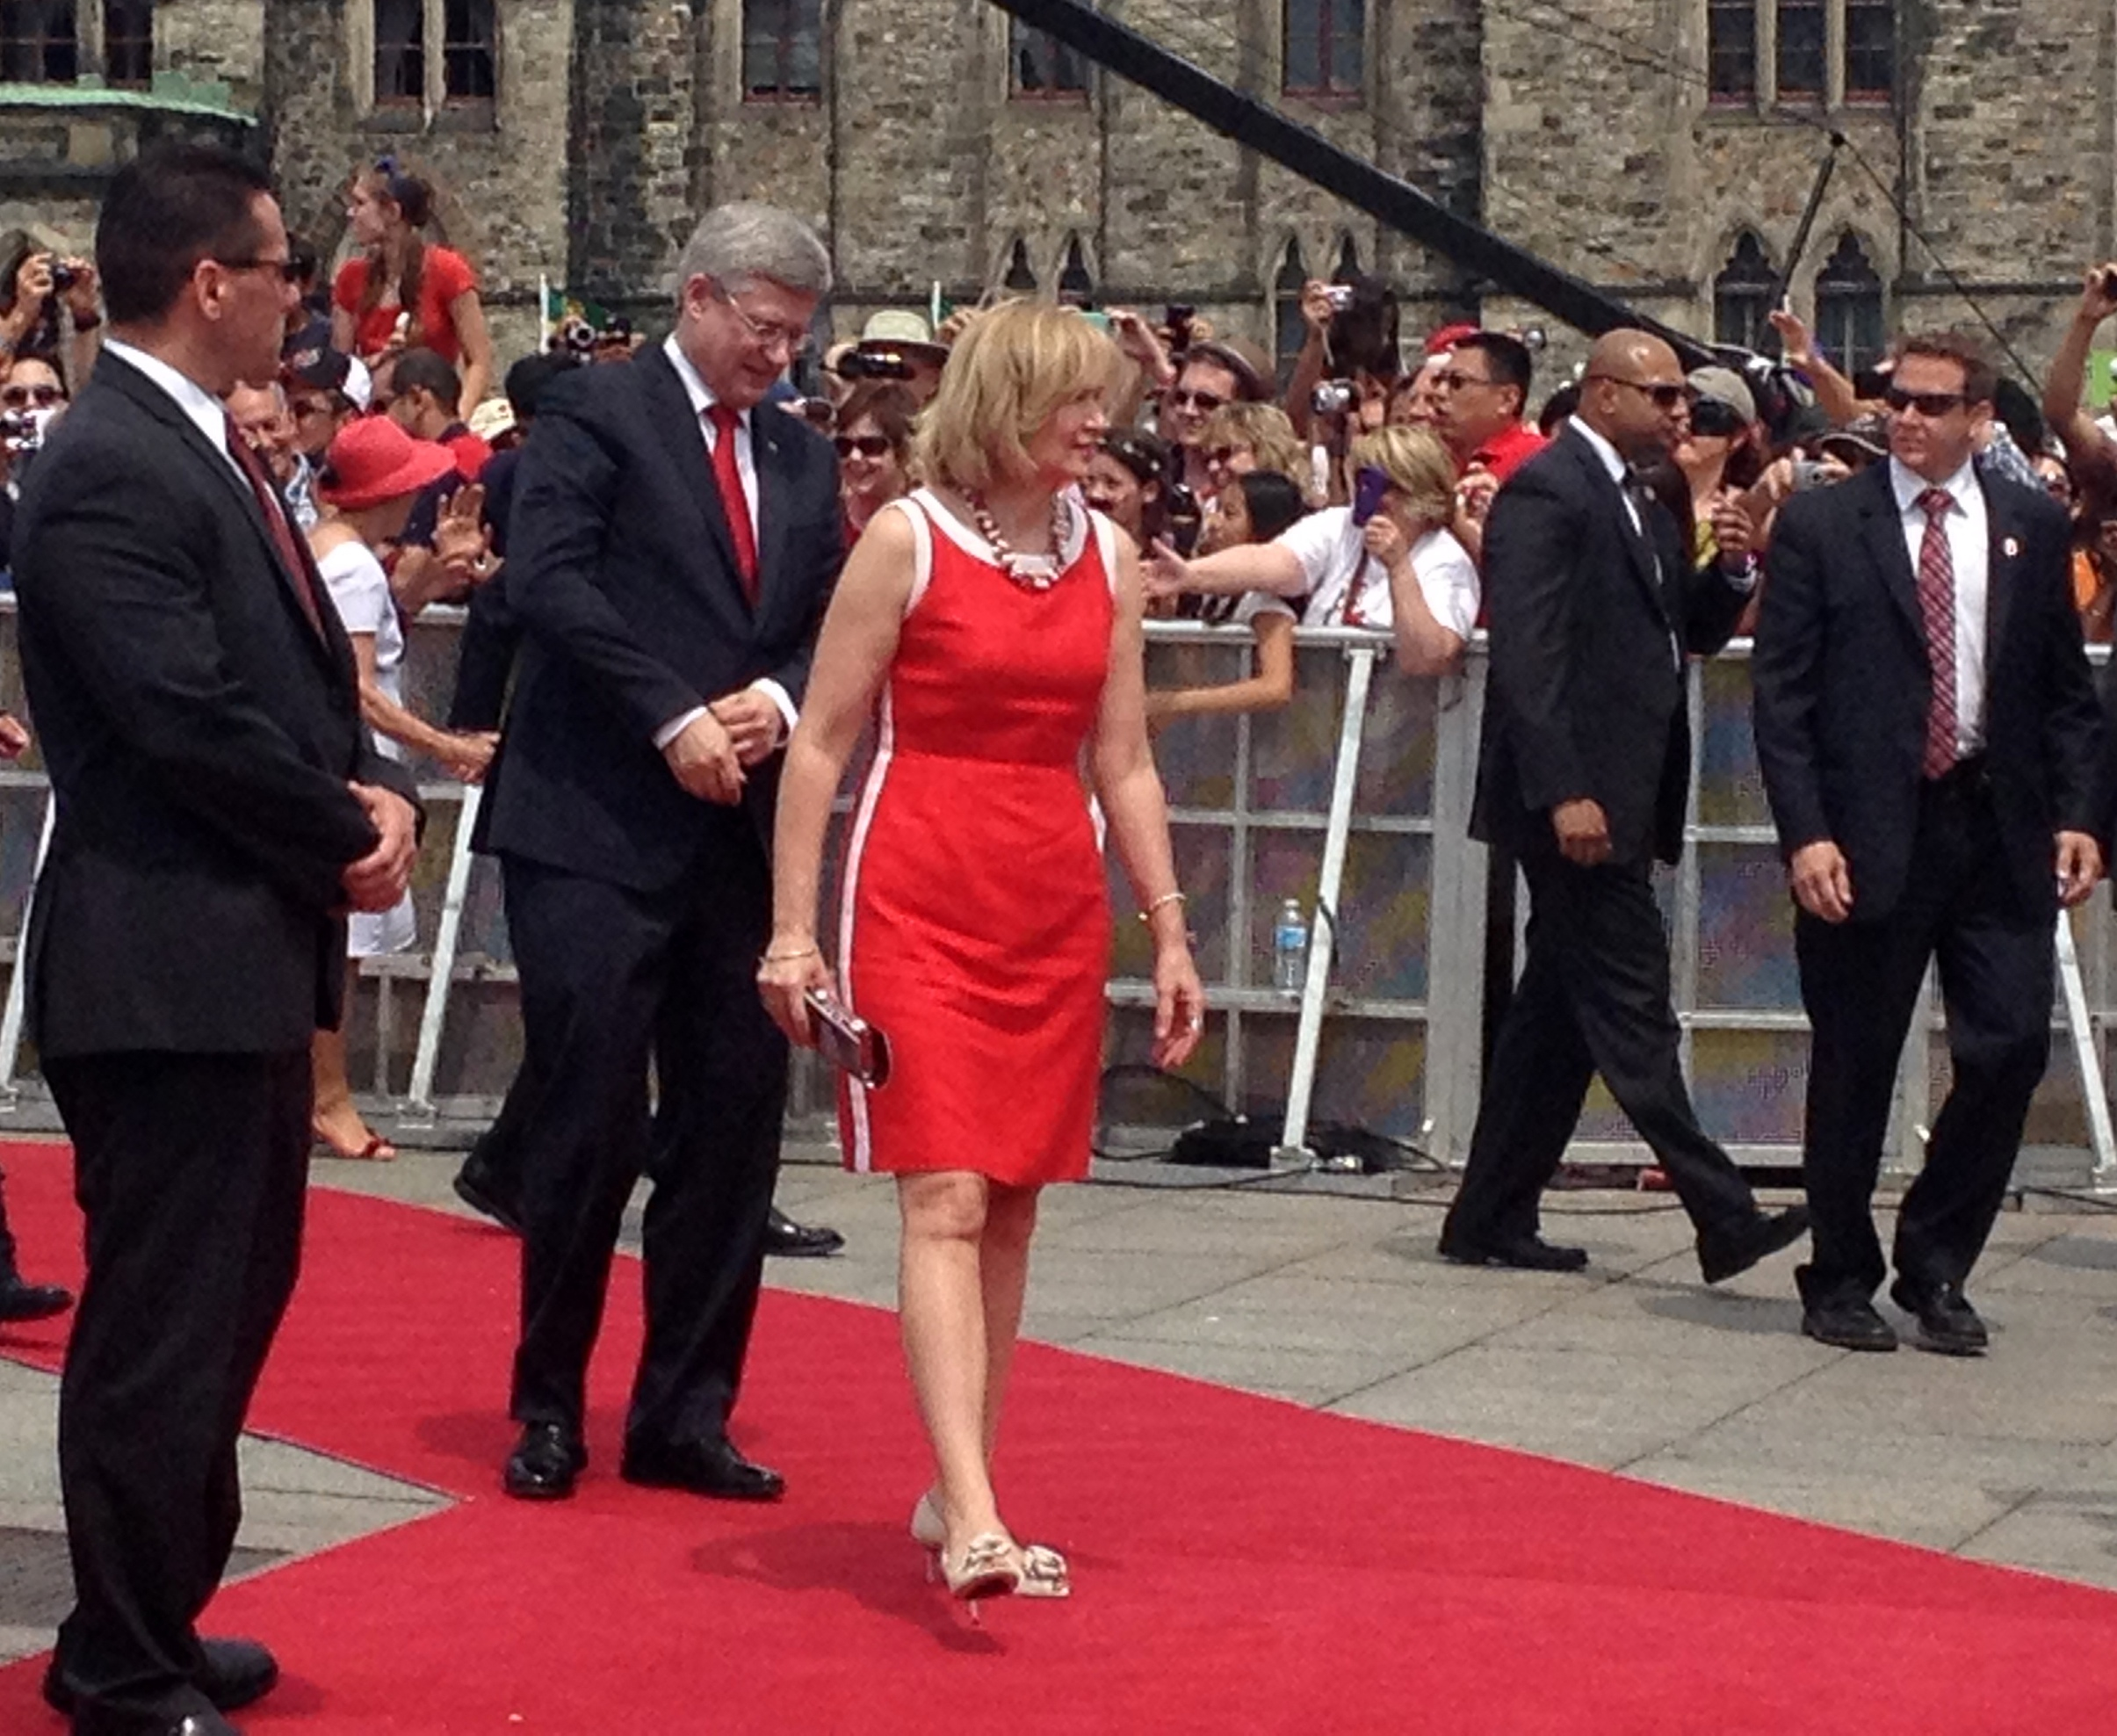 Prime Minister and Wife Enjoy Canada Day Festivities